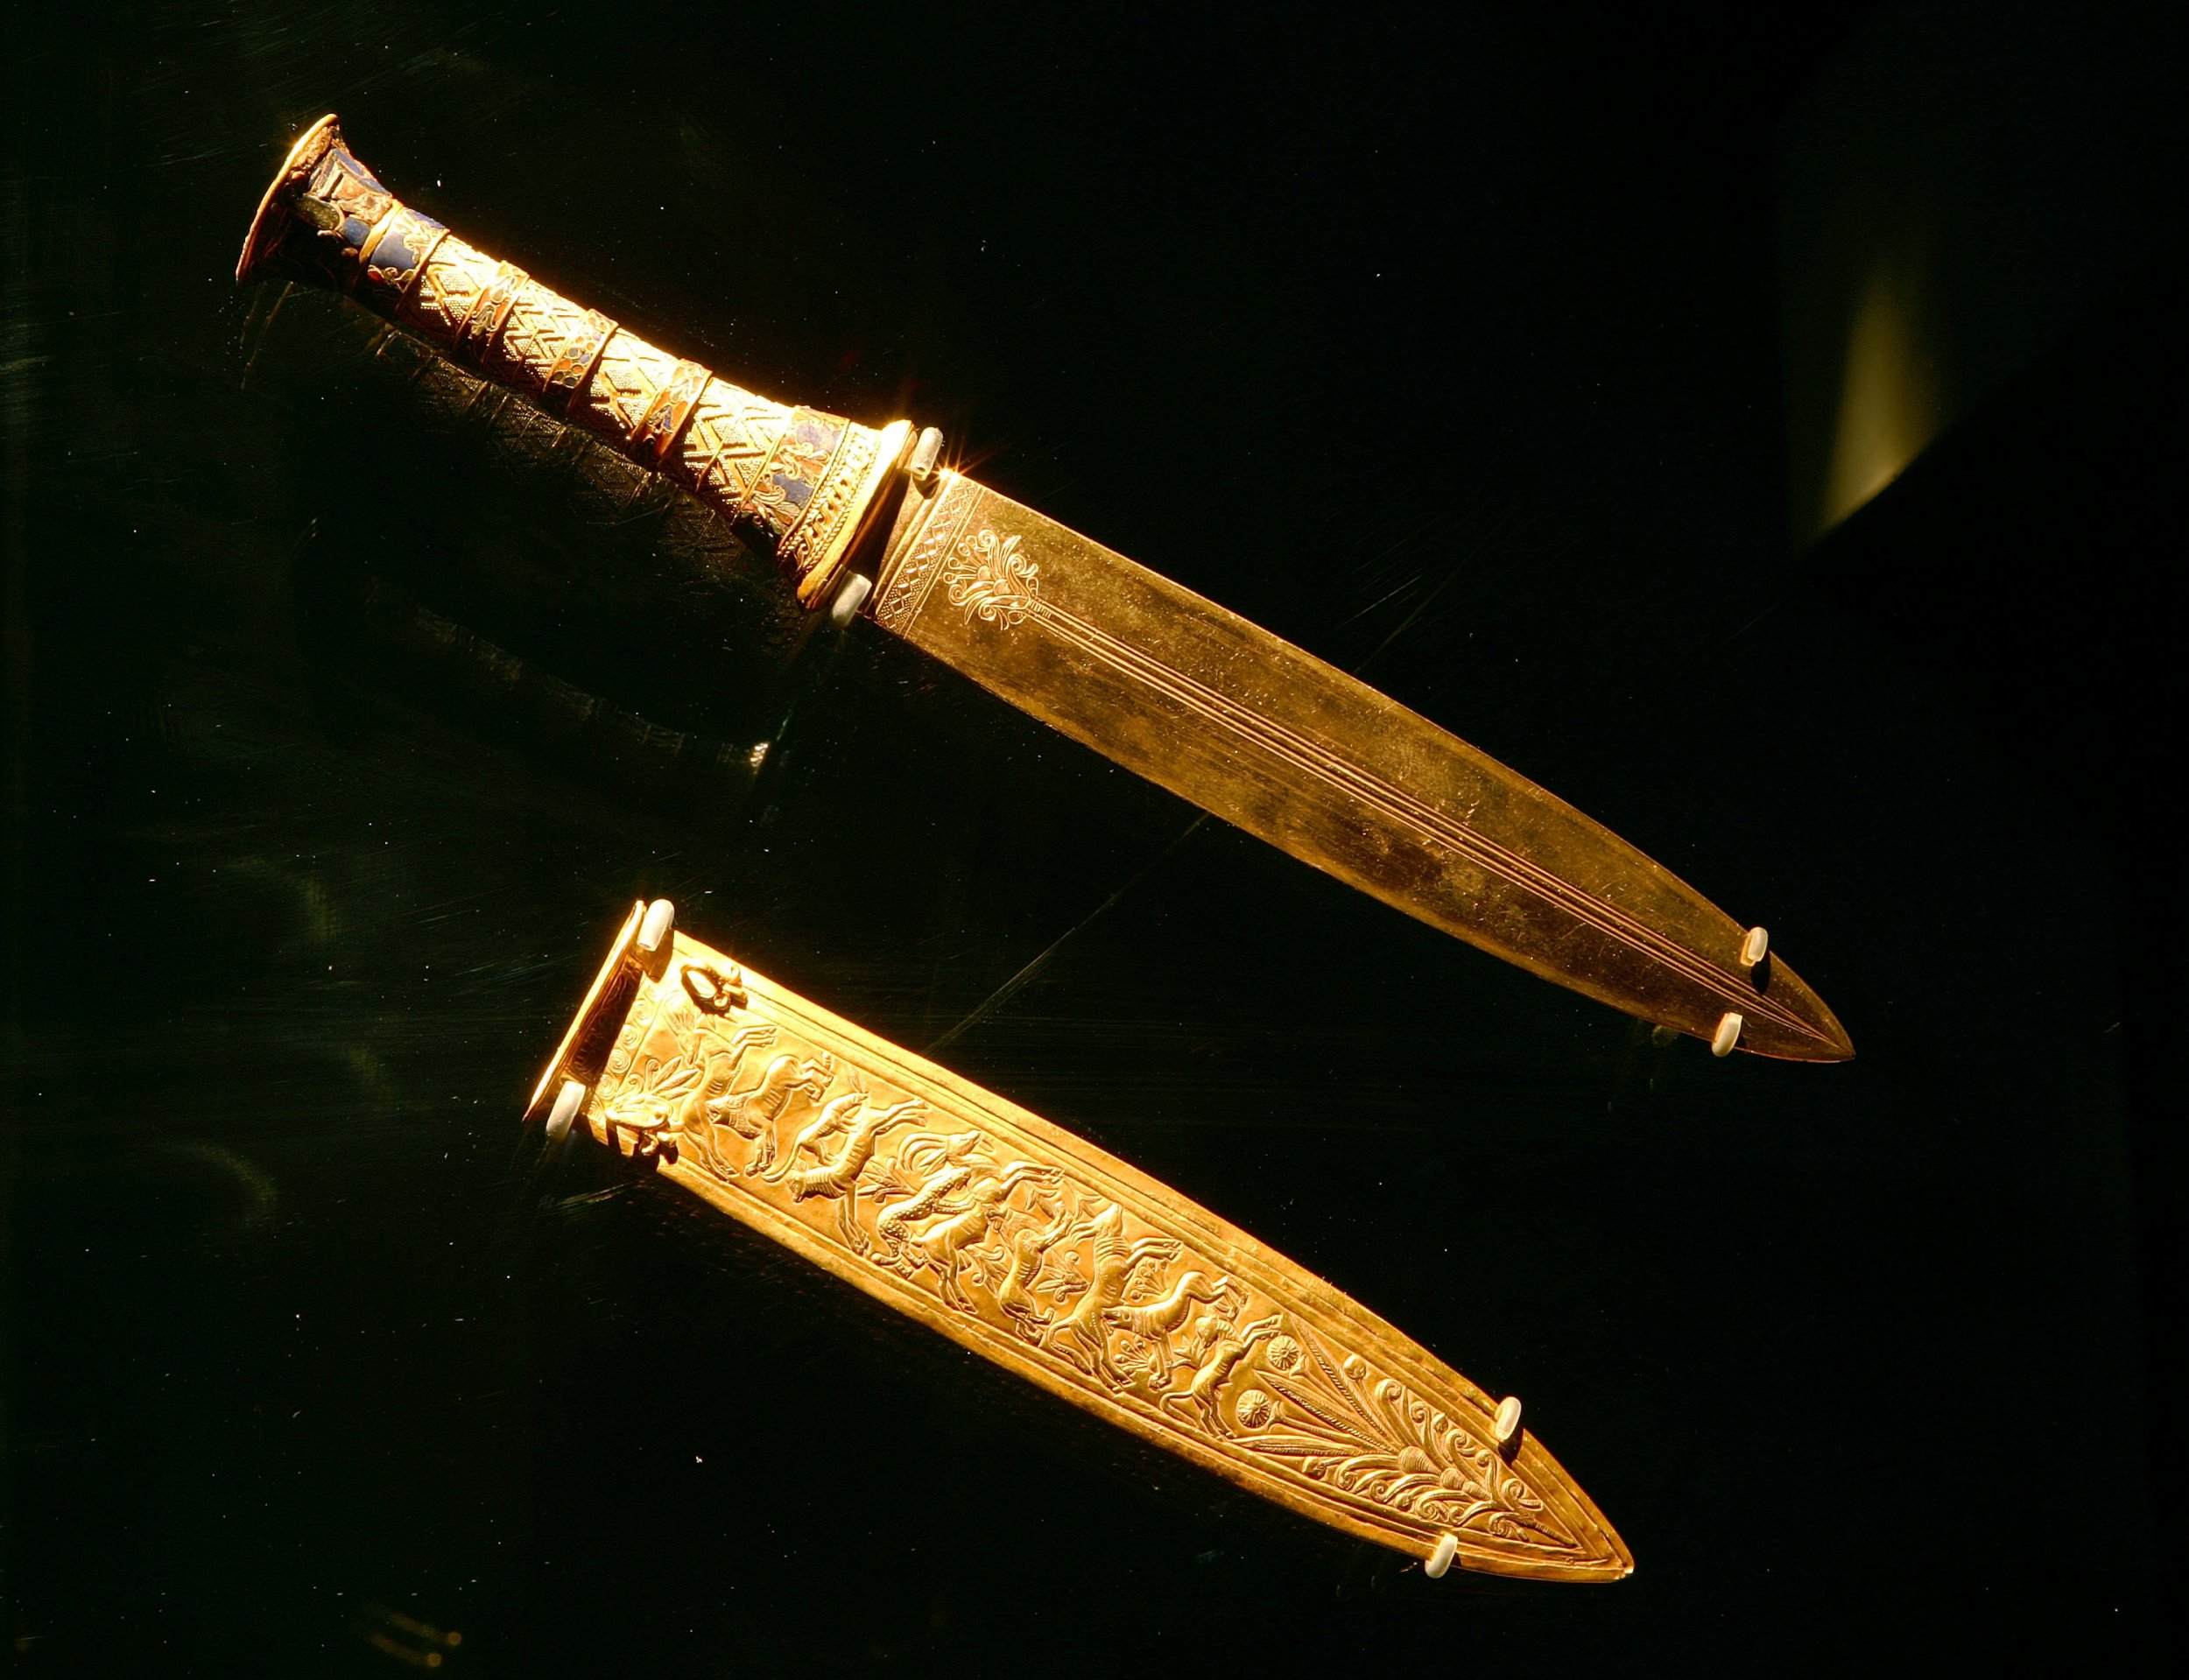 Alien Metal Was Routinely Used To Create Ancient Weapons Like